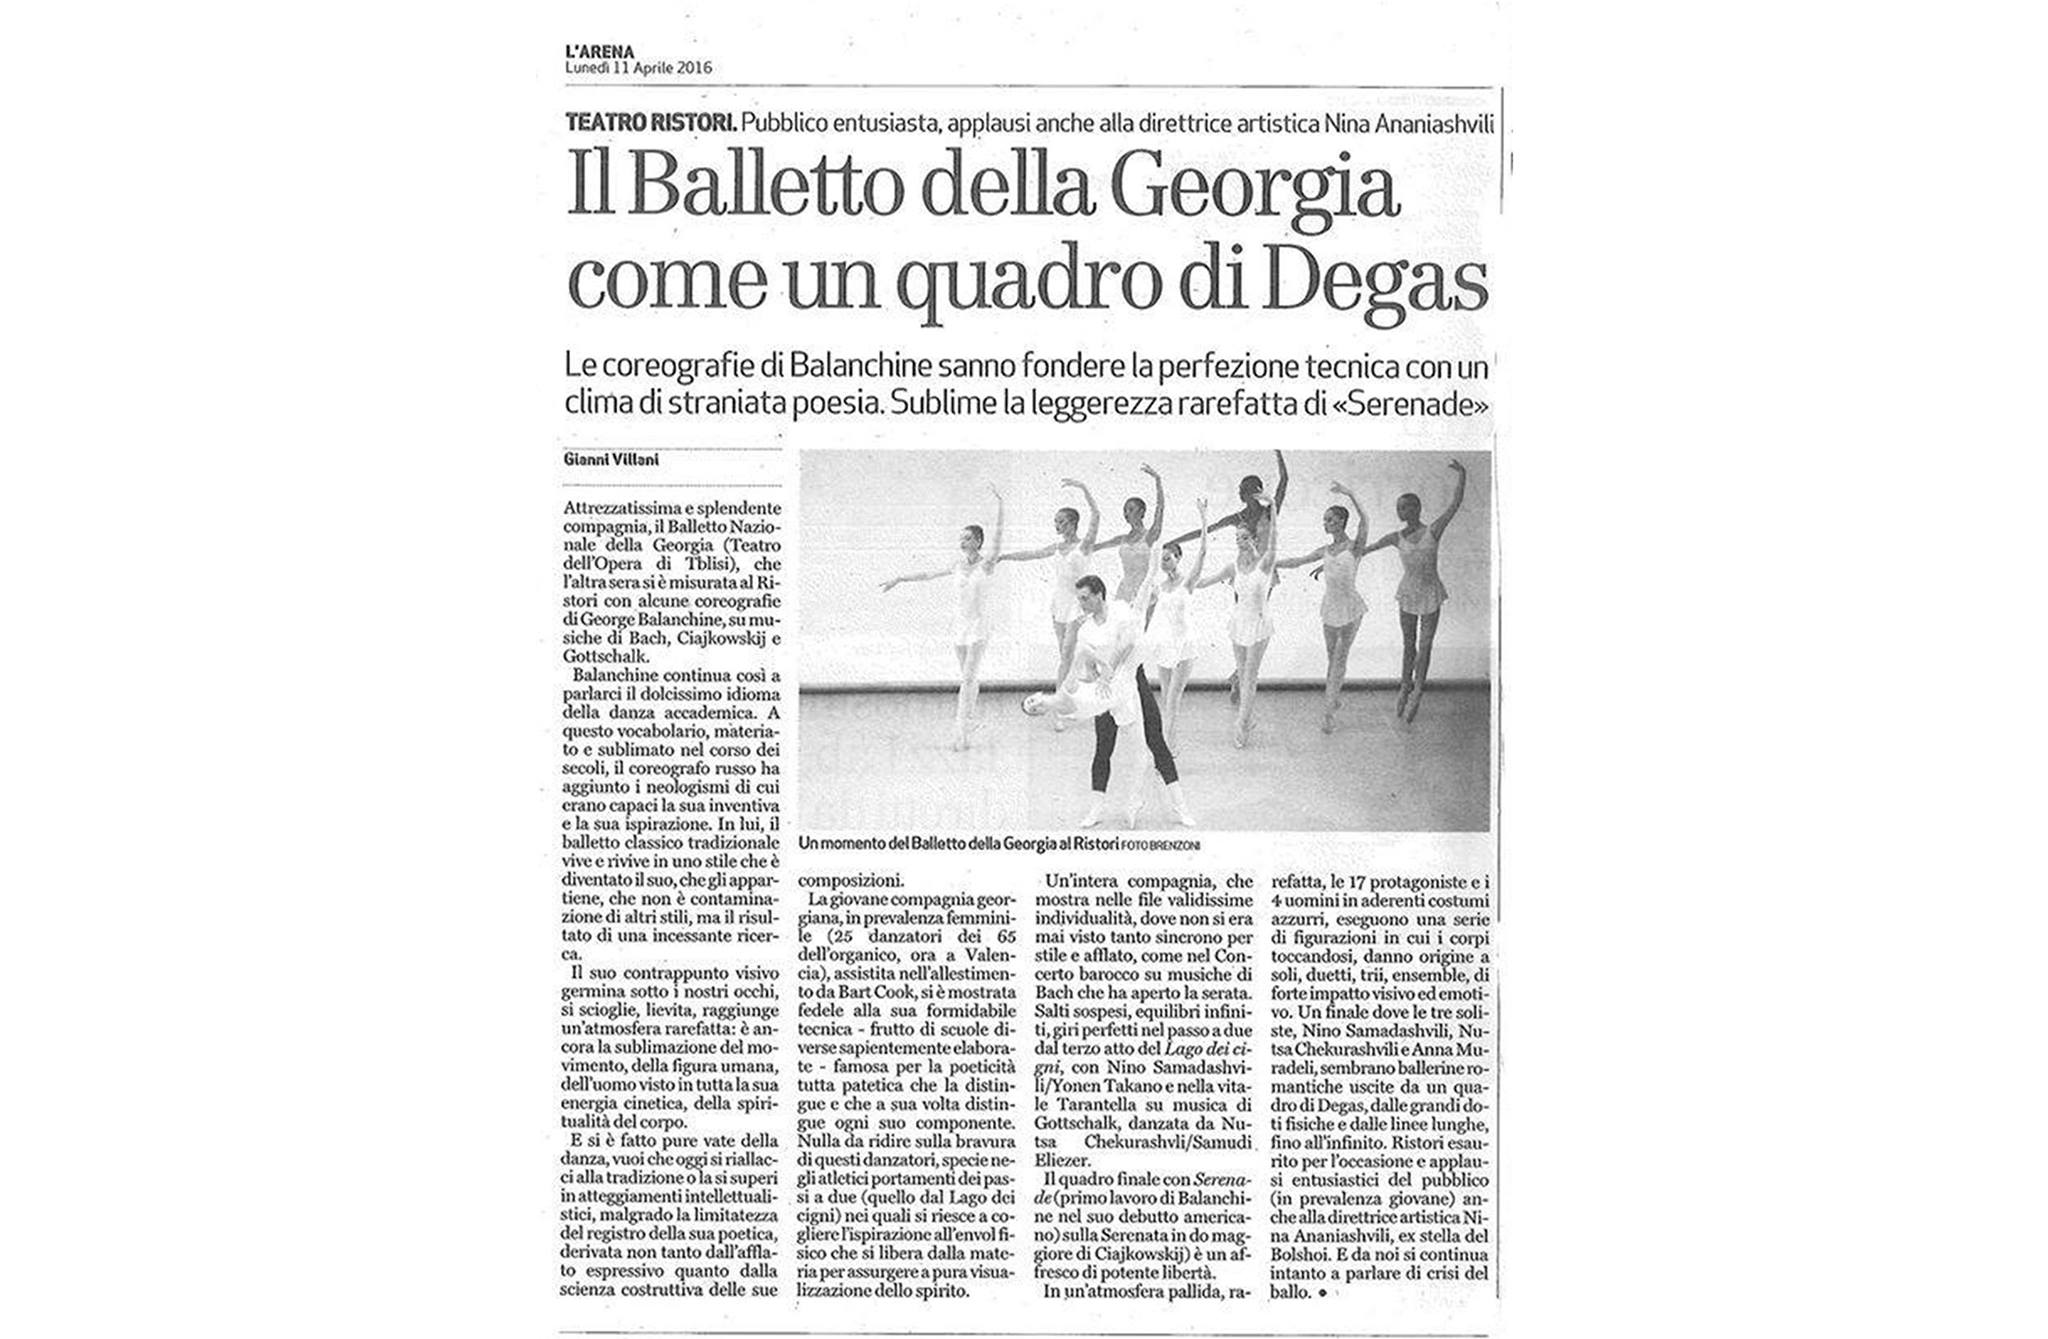 "The Italian newspaper L'ARENA ""The Ballet of Georgia - as Gorgeous as Degas' Ballerinas"" ..."